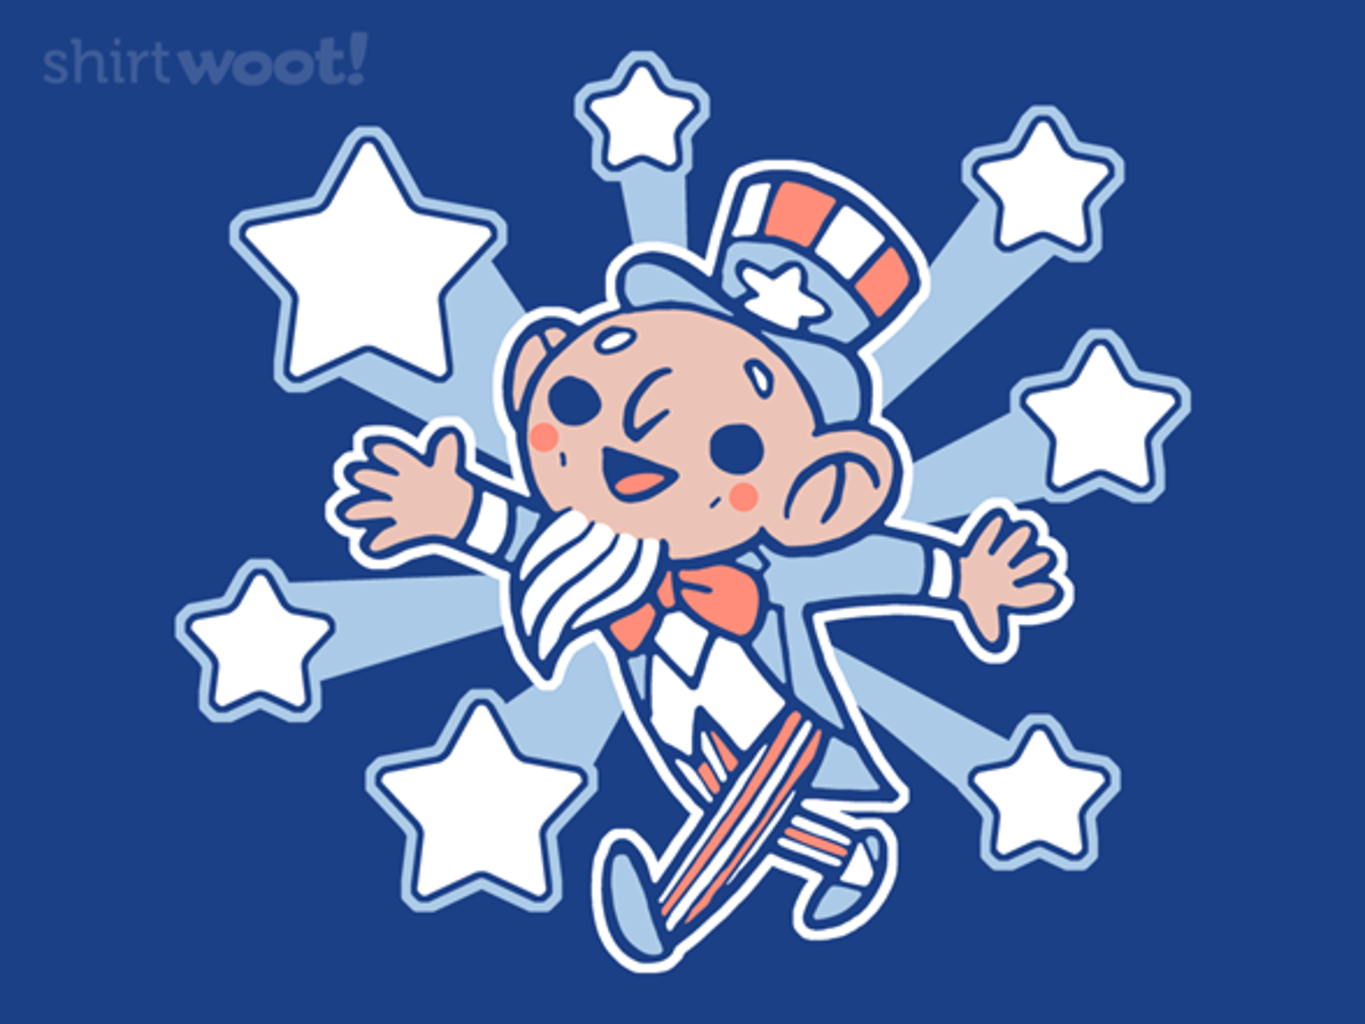 Woot!: Yankee Doodle Cutie - $15.00 + Free shipping